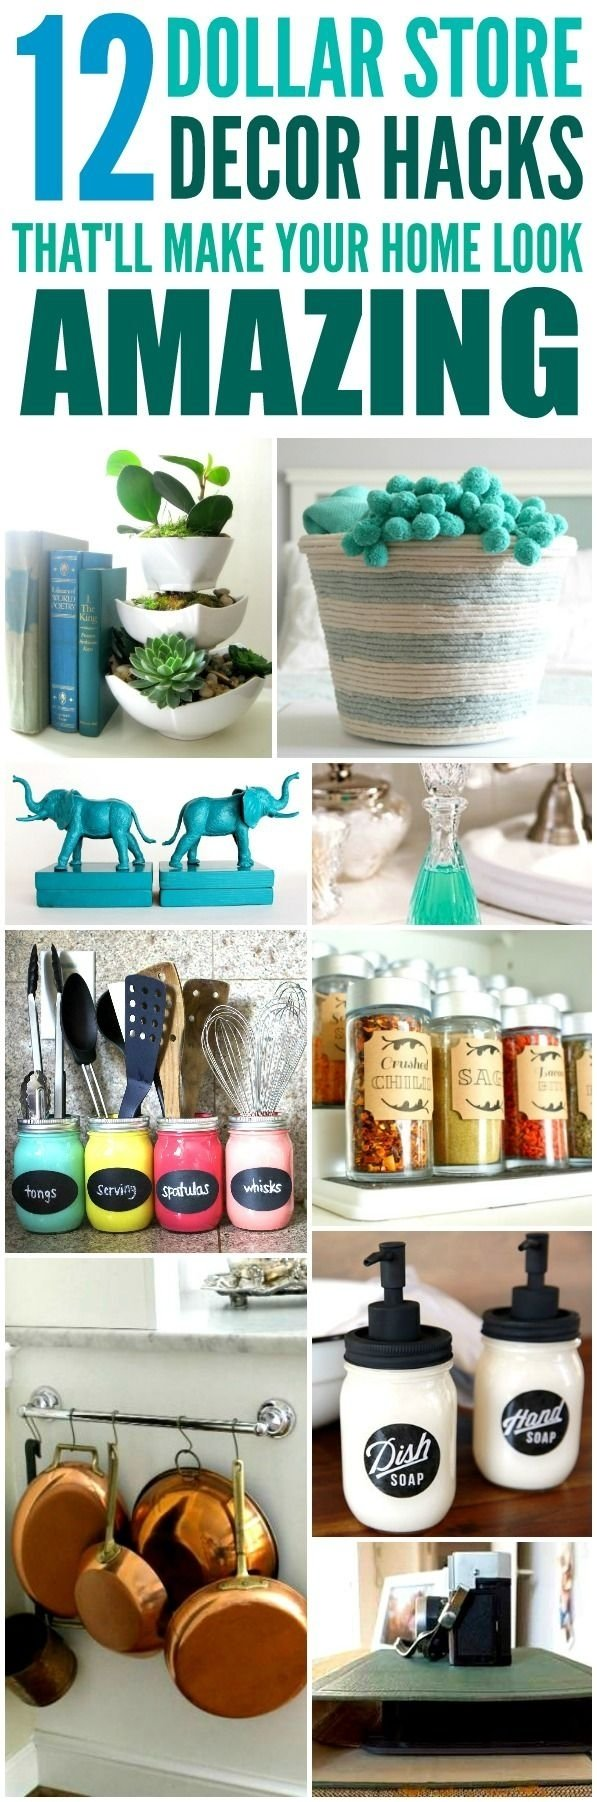 10 Great Money Saving Ideas For Home 17135 best simple money saving ideas images on pinterest money